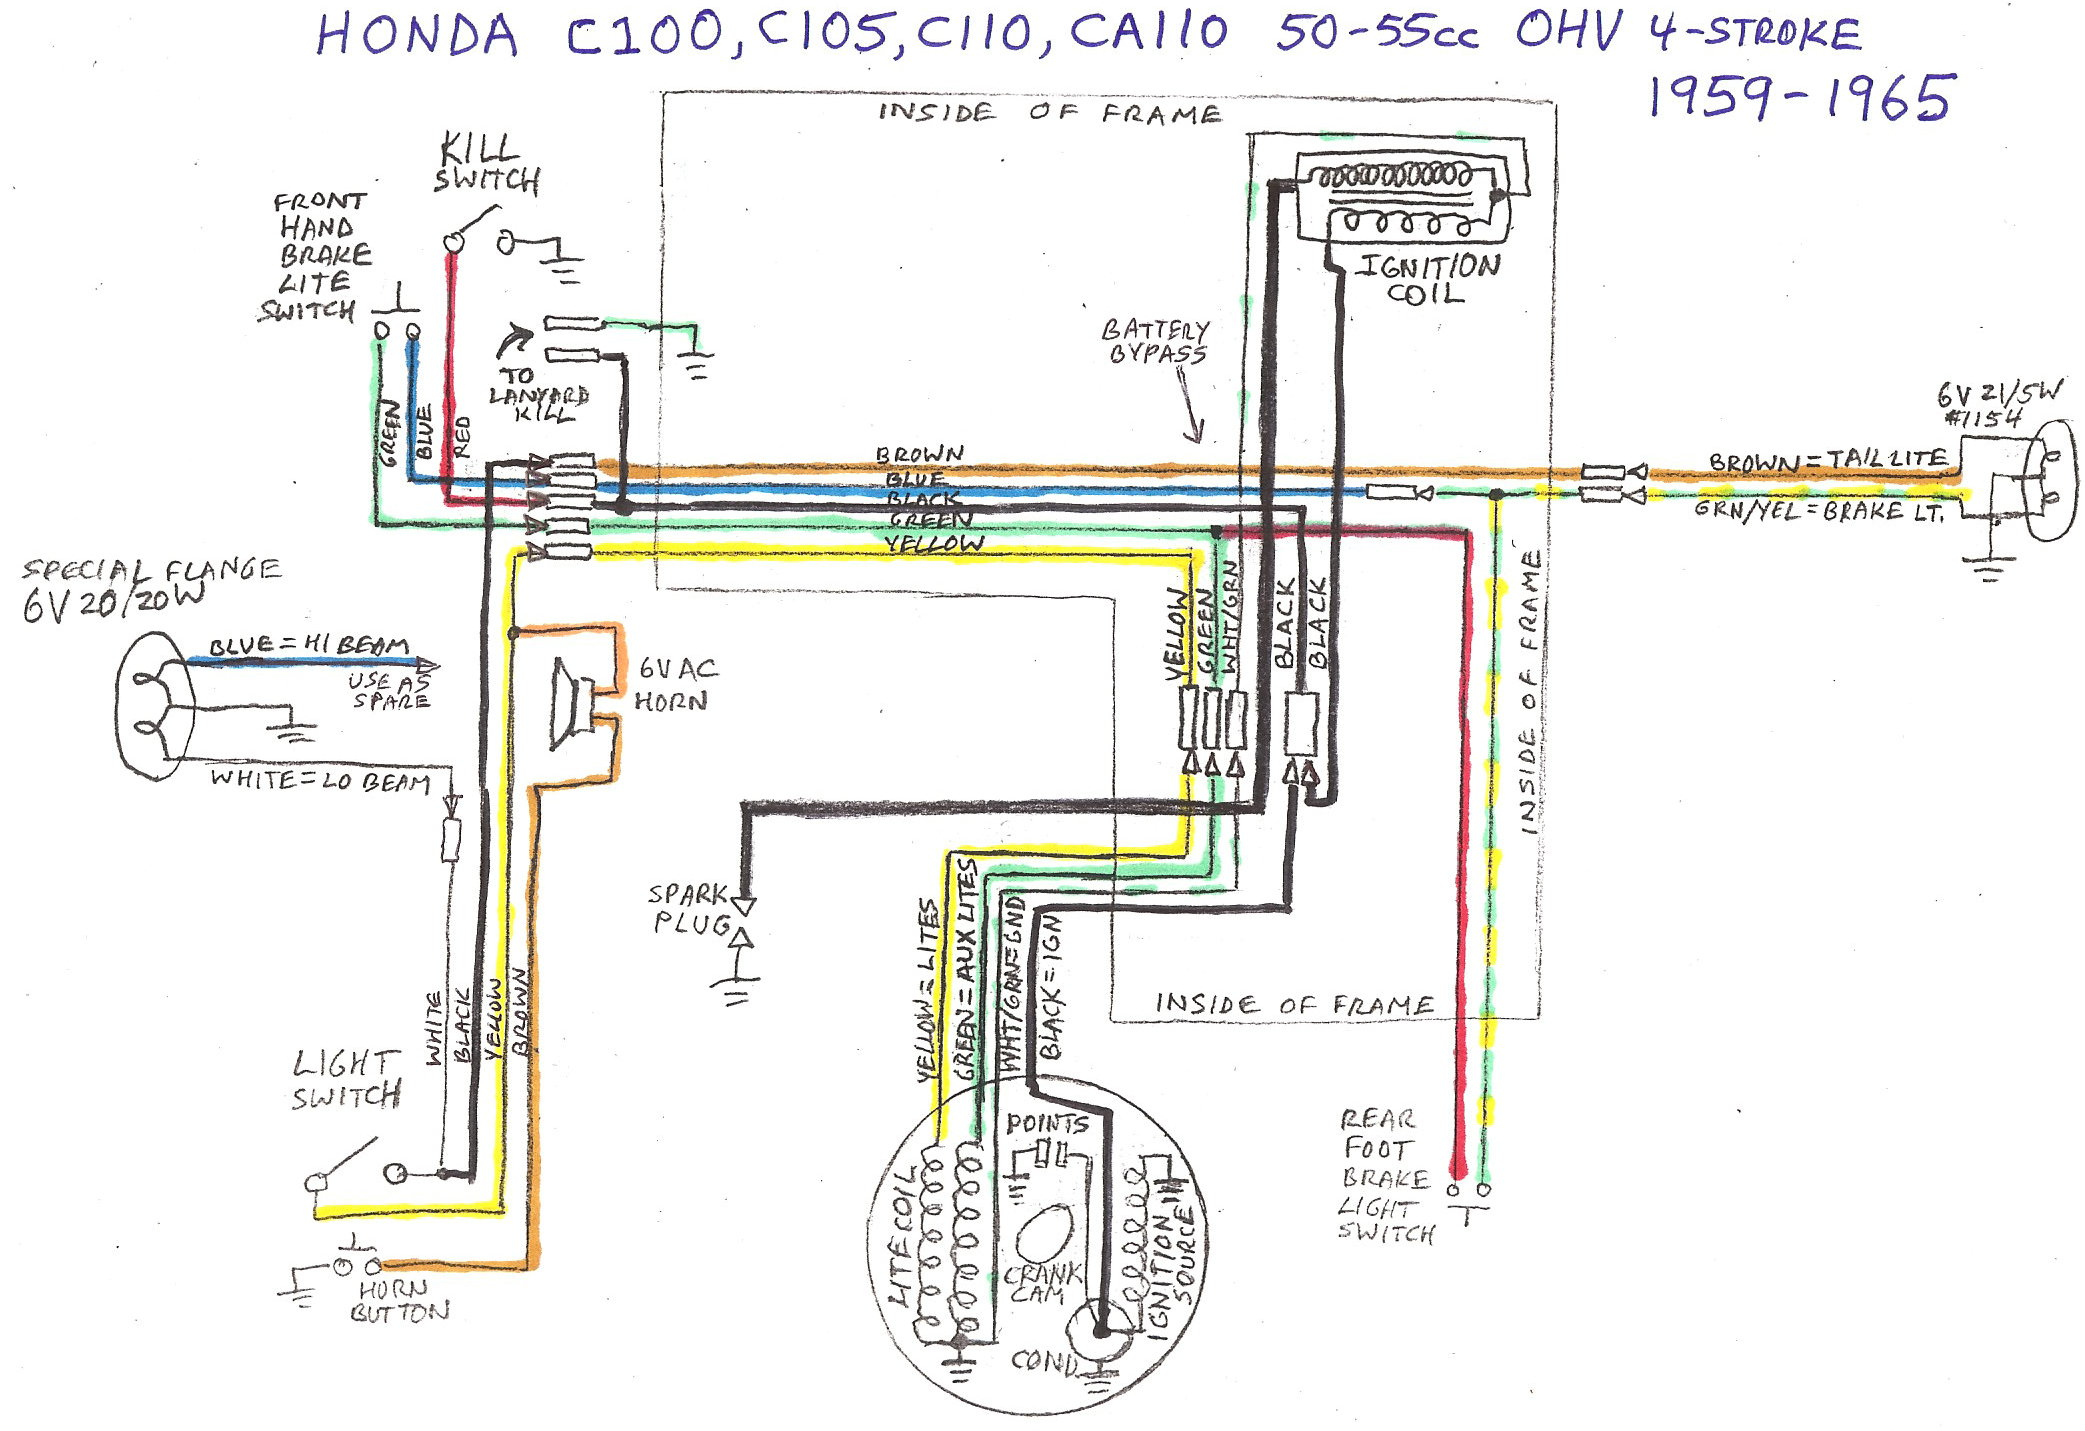 Honda Cdi Wiring Diagram 50 | Index listing of wiring diagrams on honda elite 80 wiring diagram, honda coil wiring diagram, honda fourtrax cdi, honda xr 250 wiring diagram, honda cdi repair, honda starter wiring diagram, honda atc 90 wiring diagram, honda atv wiring diagram, honda trx 300 wiring diagram, 1983 honda shadow 750 wiring diagram, chinese atv cdi diagram, honda outboard ignition switch wiring diagram, 6 wire cdi box diagram, honda rebel 250 parts diagram, honda cdi test, honda cdi engine, honda motorcycle wiring diagrams, honda 90 ignition wiring diagram, honda car wiring diagram, honda goldwing gl1000 wiring-diagram,